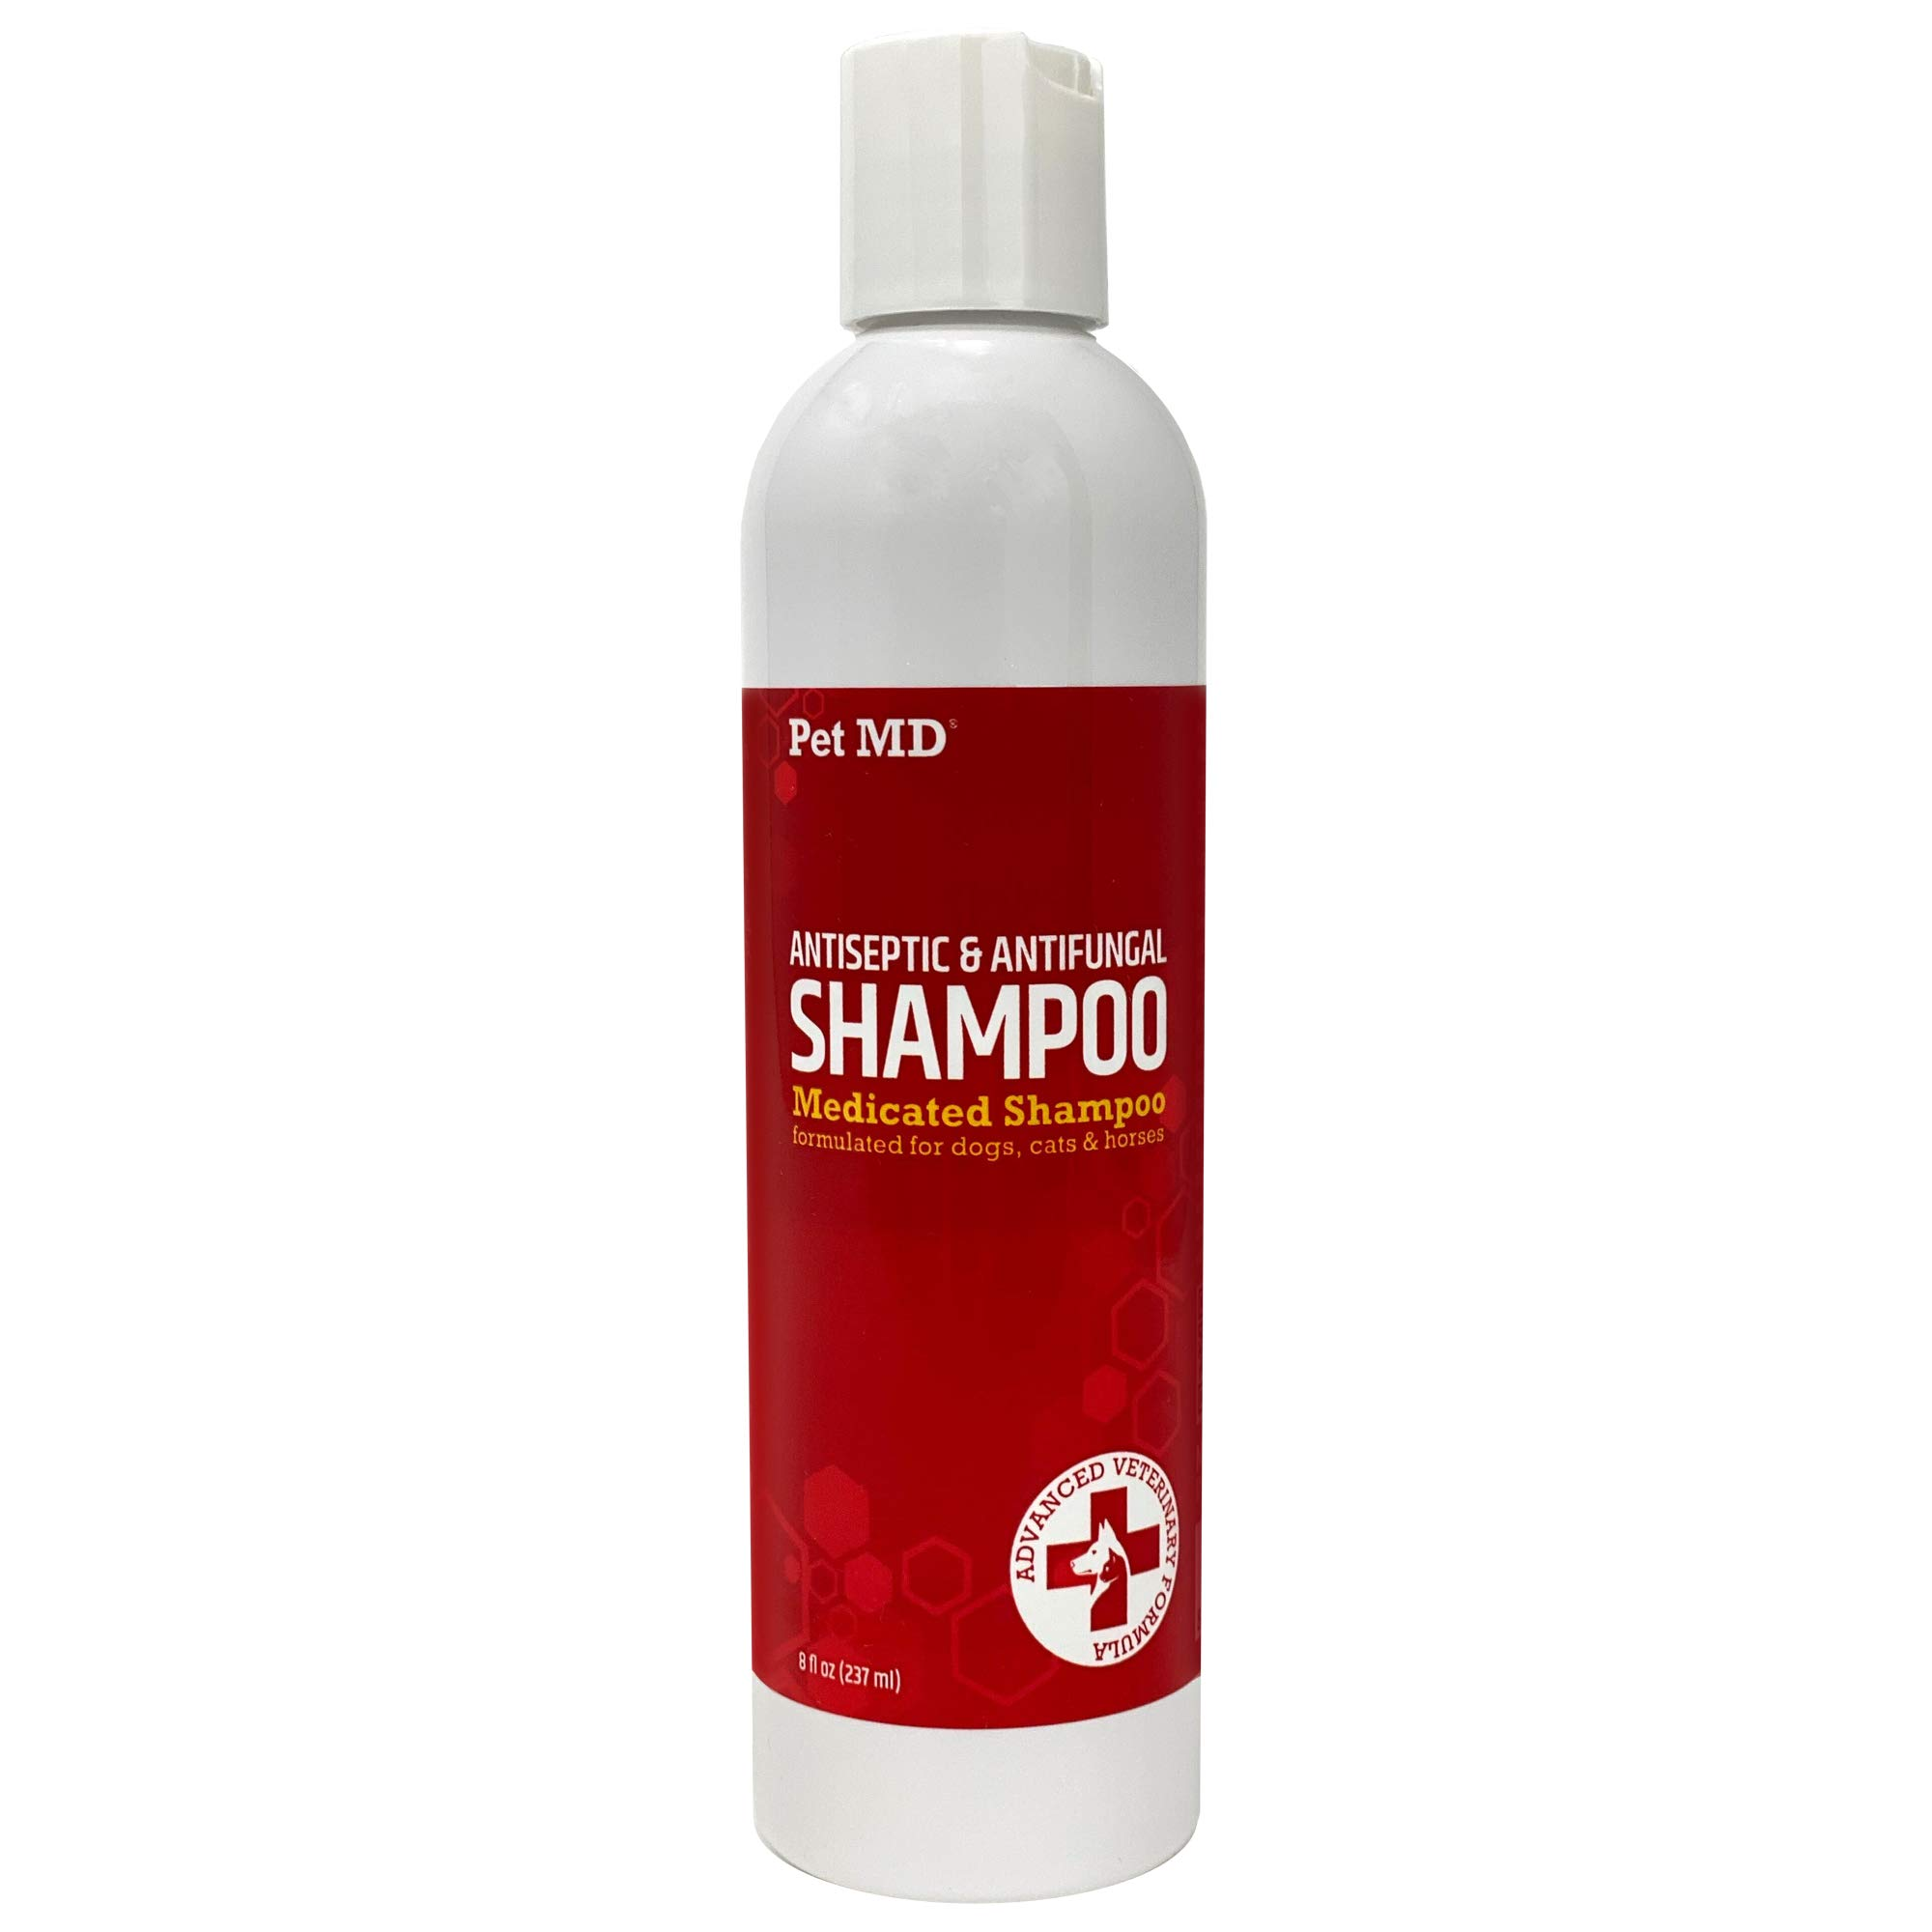 Pet MD Medicated Shampoo for Dogs, Cats, & Horses - Medicated Dog Shampoo with Ketoconazole & Chlorhexidine - Skin Infections, Anti Itch, Allergies, Abrasions, & Acne - 8 oz